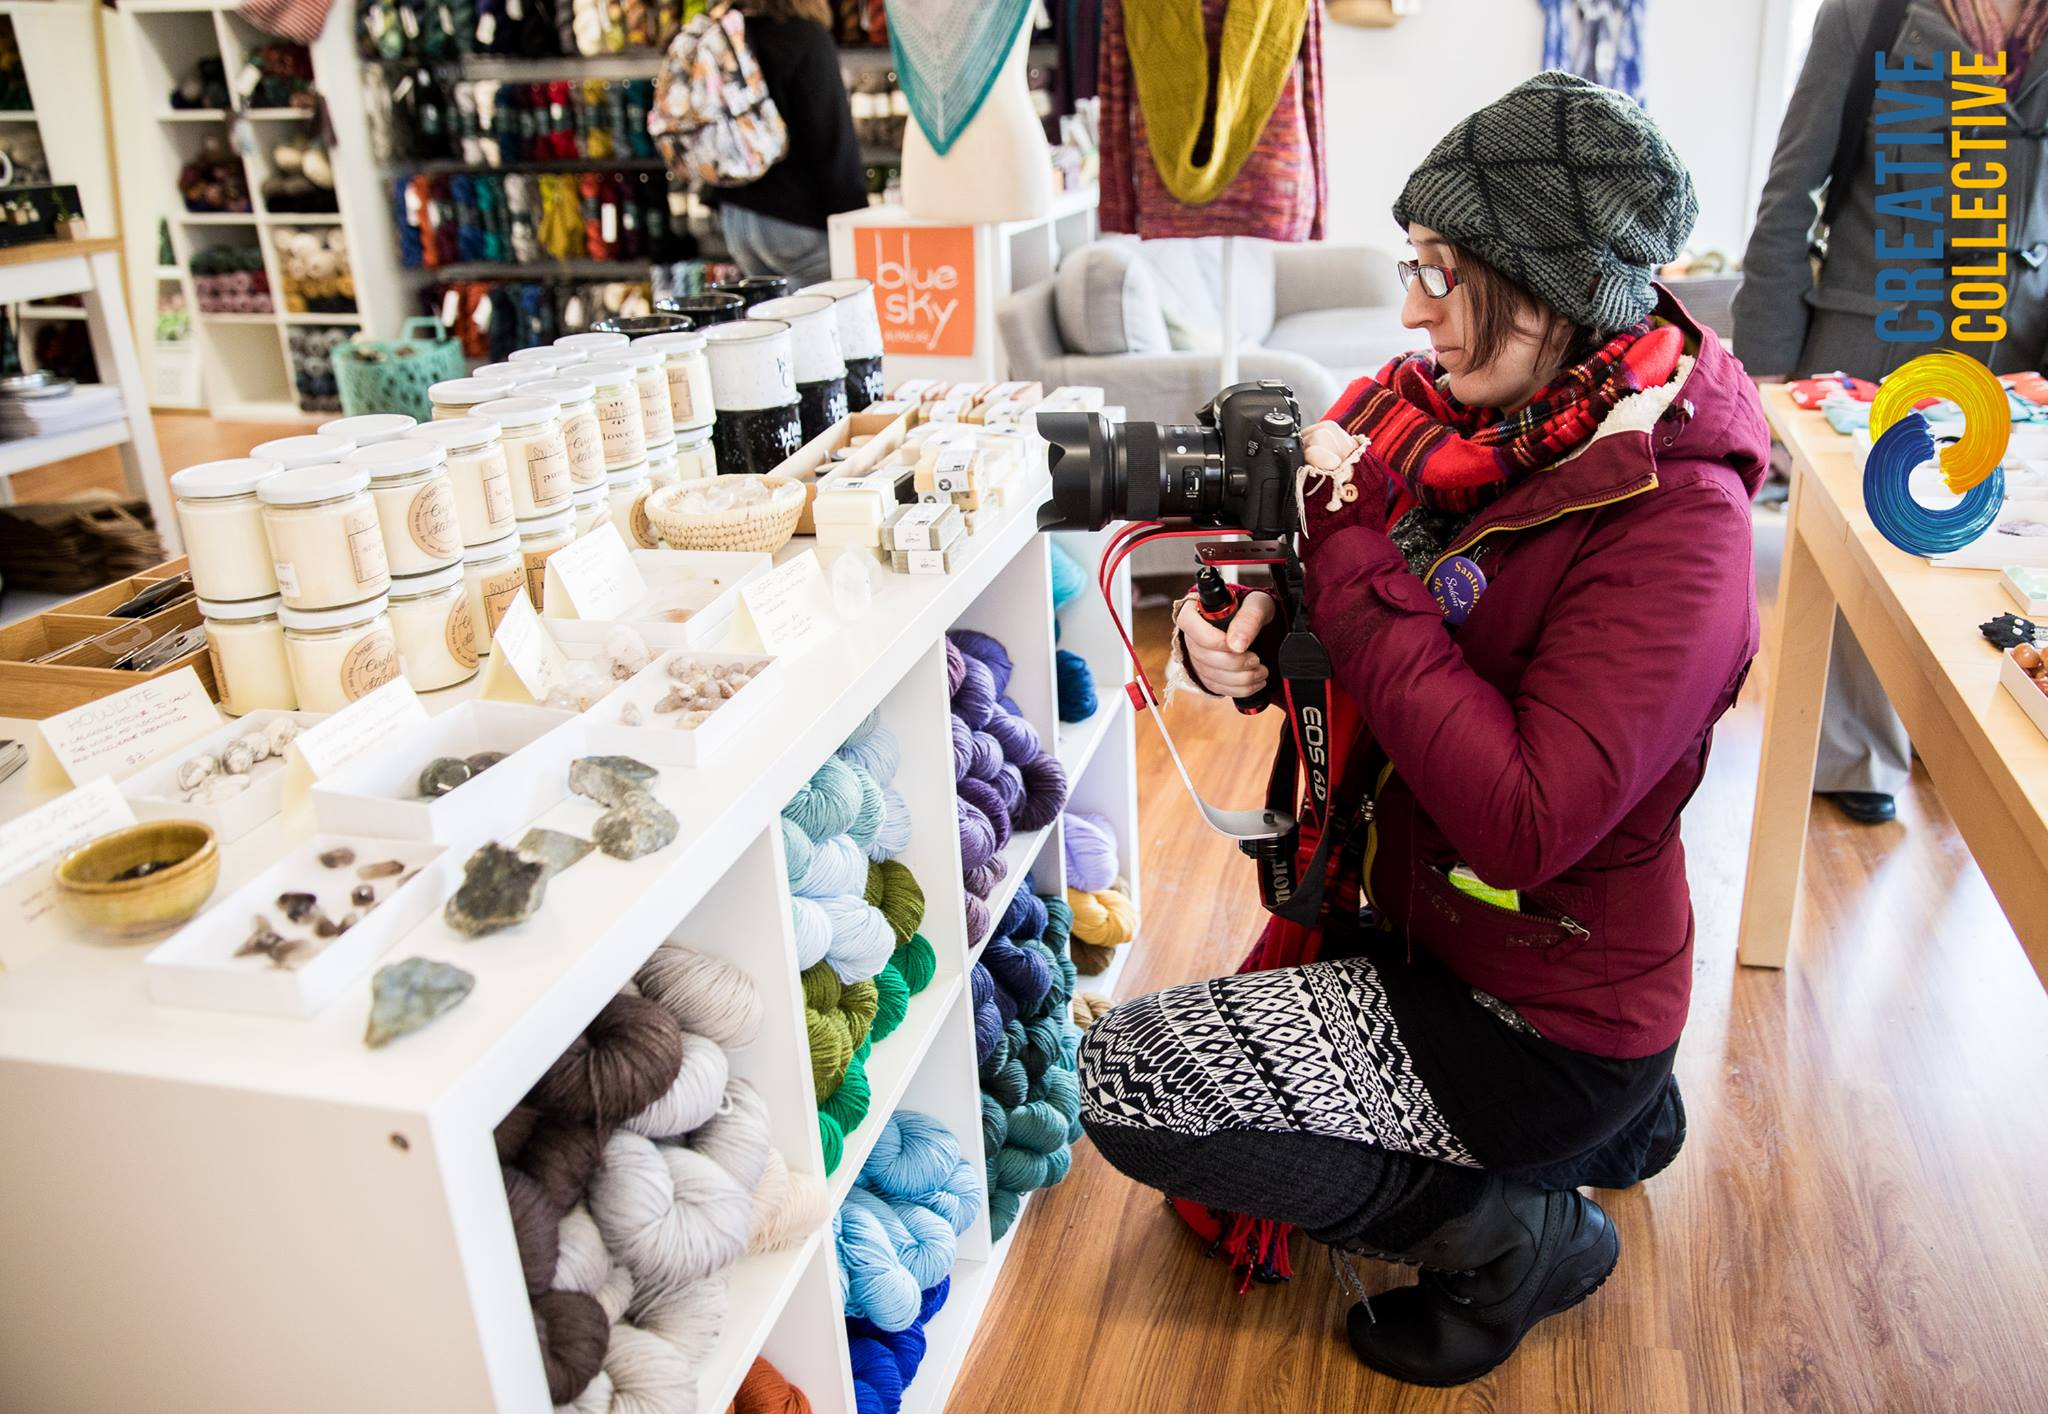 Joey Phoenix films at Circle of Stitches in Salem MA. as part of a series of retail promotions for the city of Salem. By using professional creatives to showcase creative industries there is a certain synergy and creative energy that makes customers want to invest in both the establishment but also the artist responsible for the promotional materials. All of this then supports the local economy and support the cities mission to support it's small businesses.